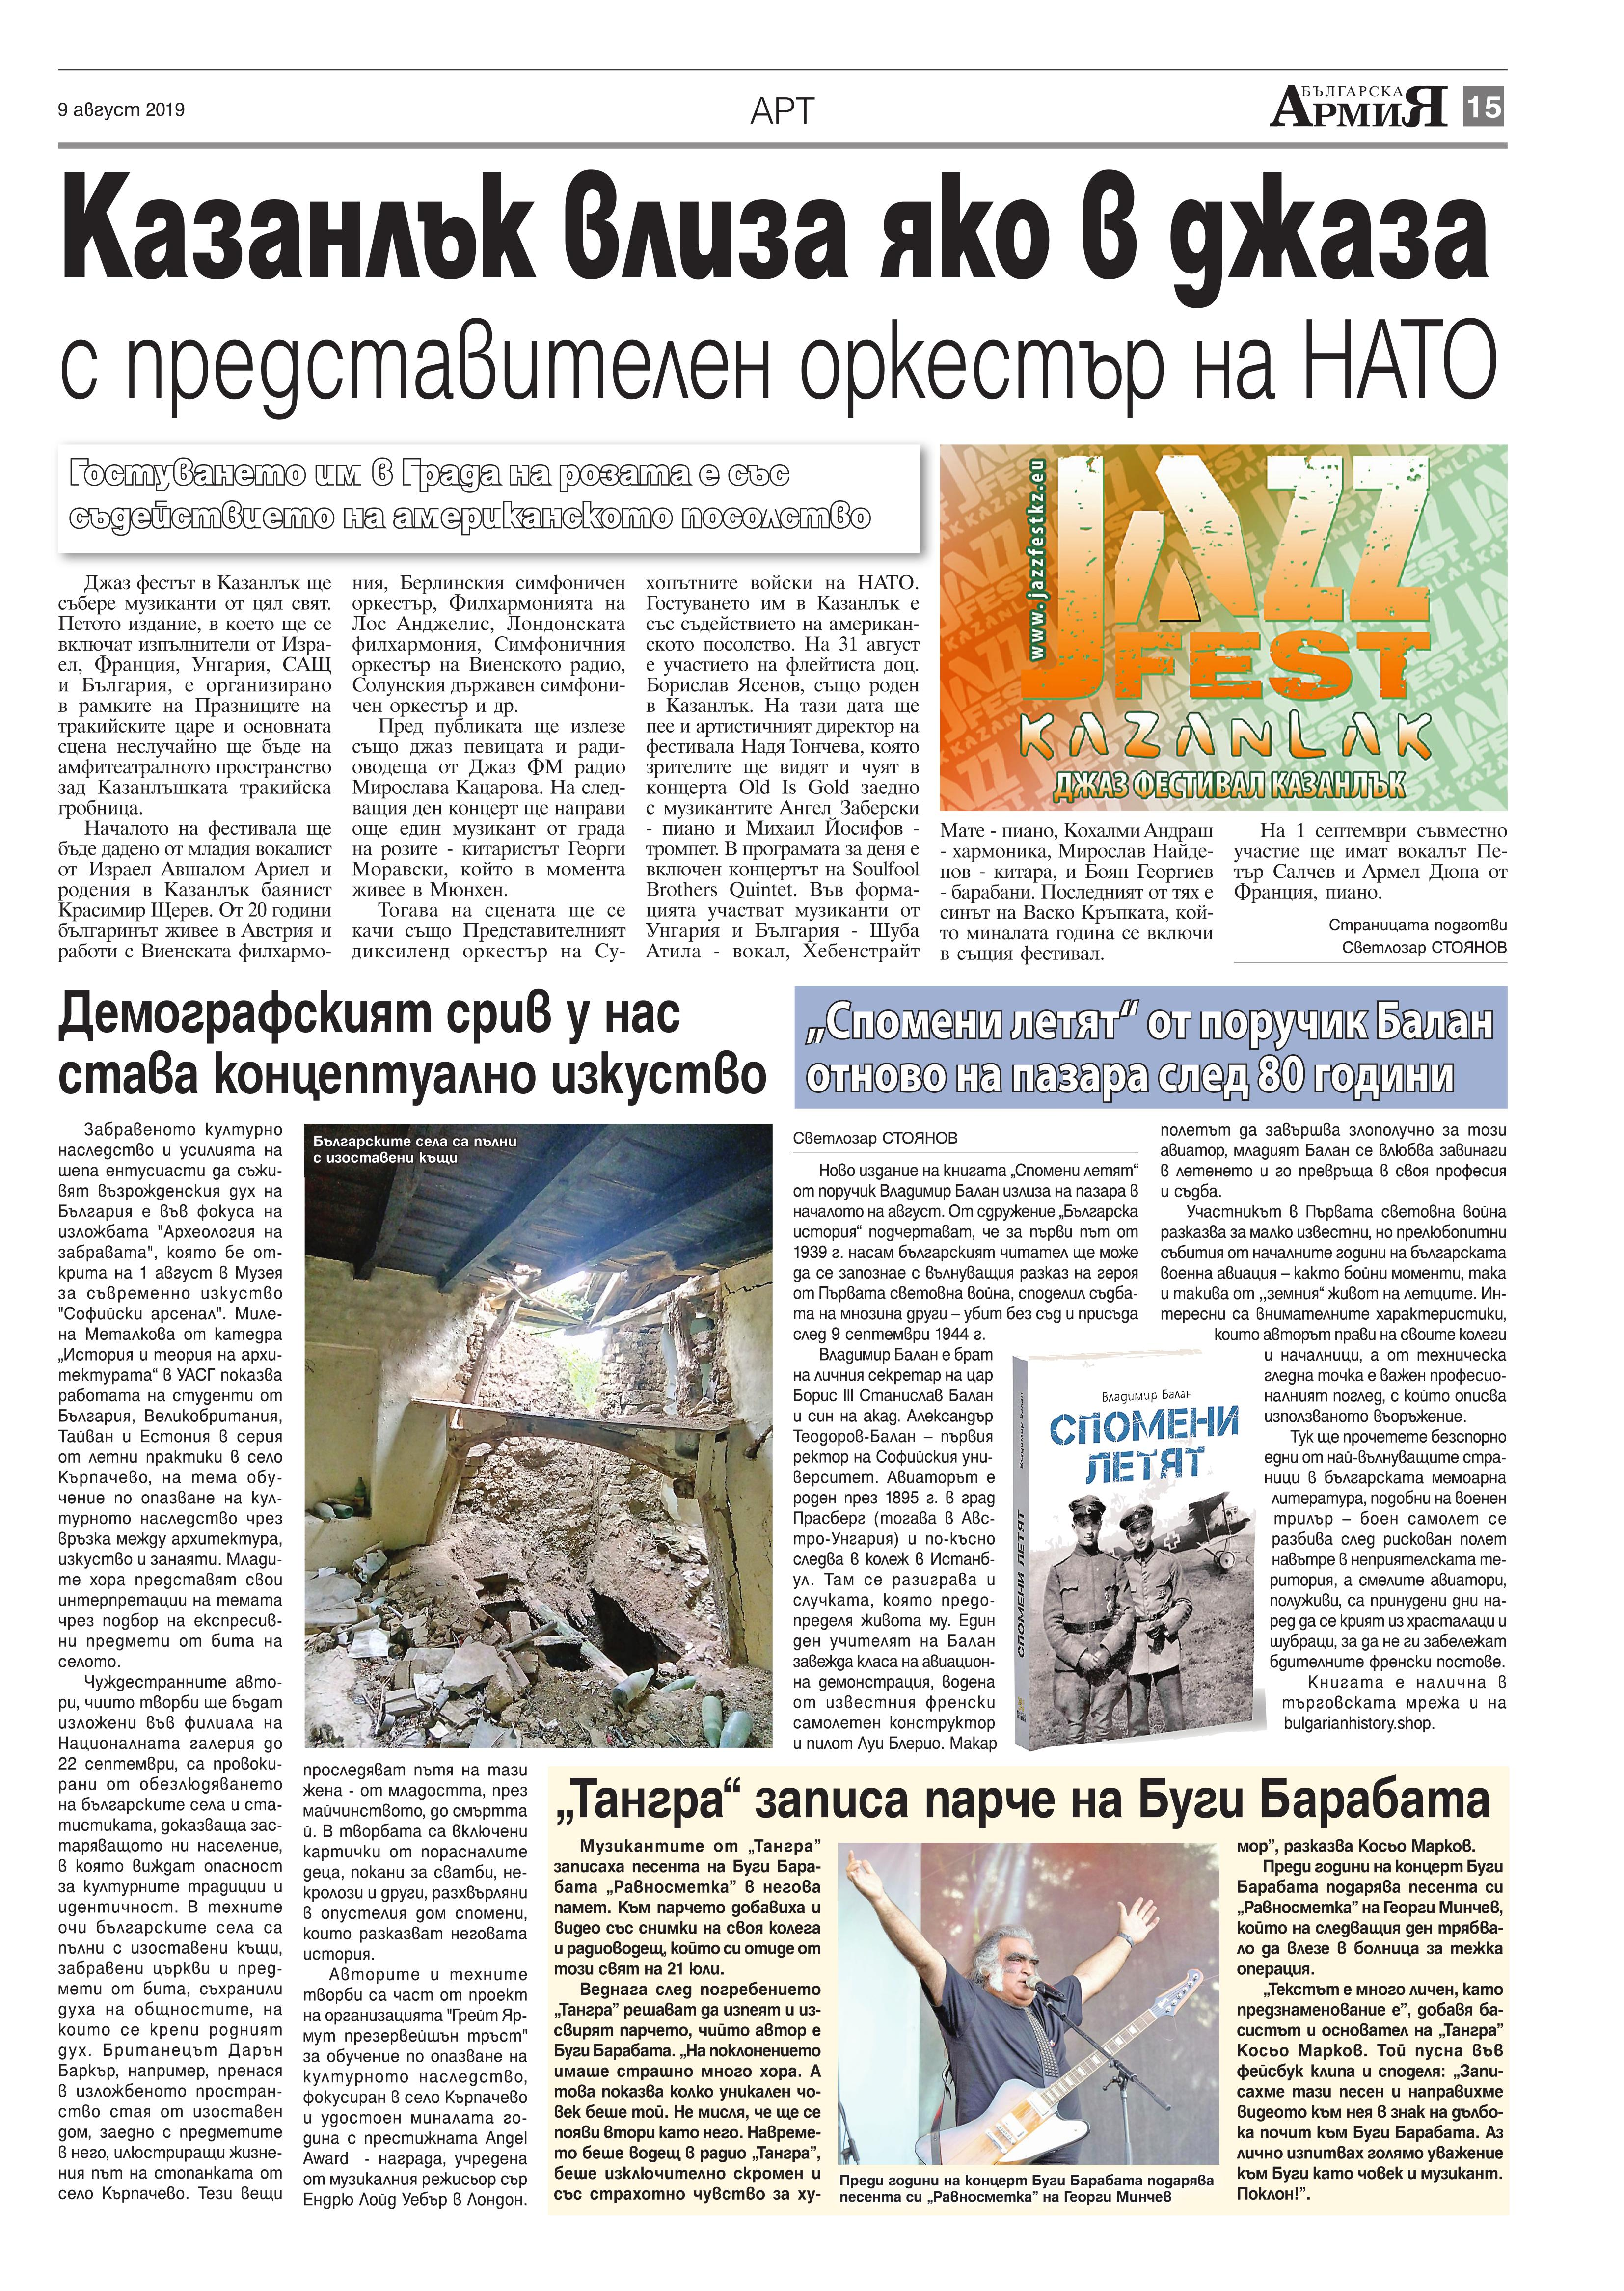 https://www.armymedia.bg/wp-content/uploads/2015/06/15.page1_-106.jpg